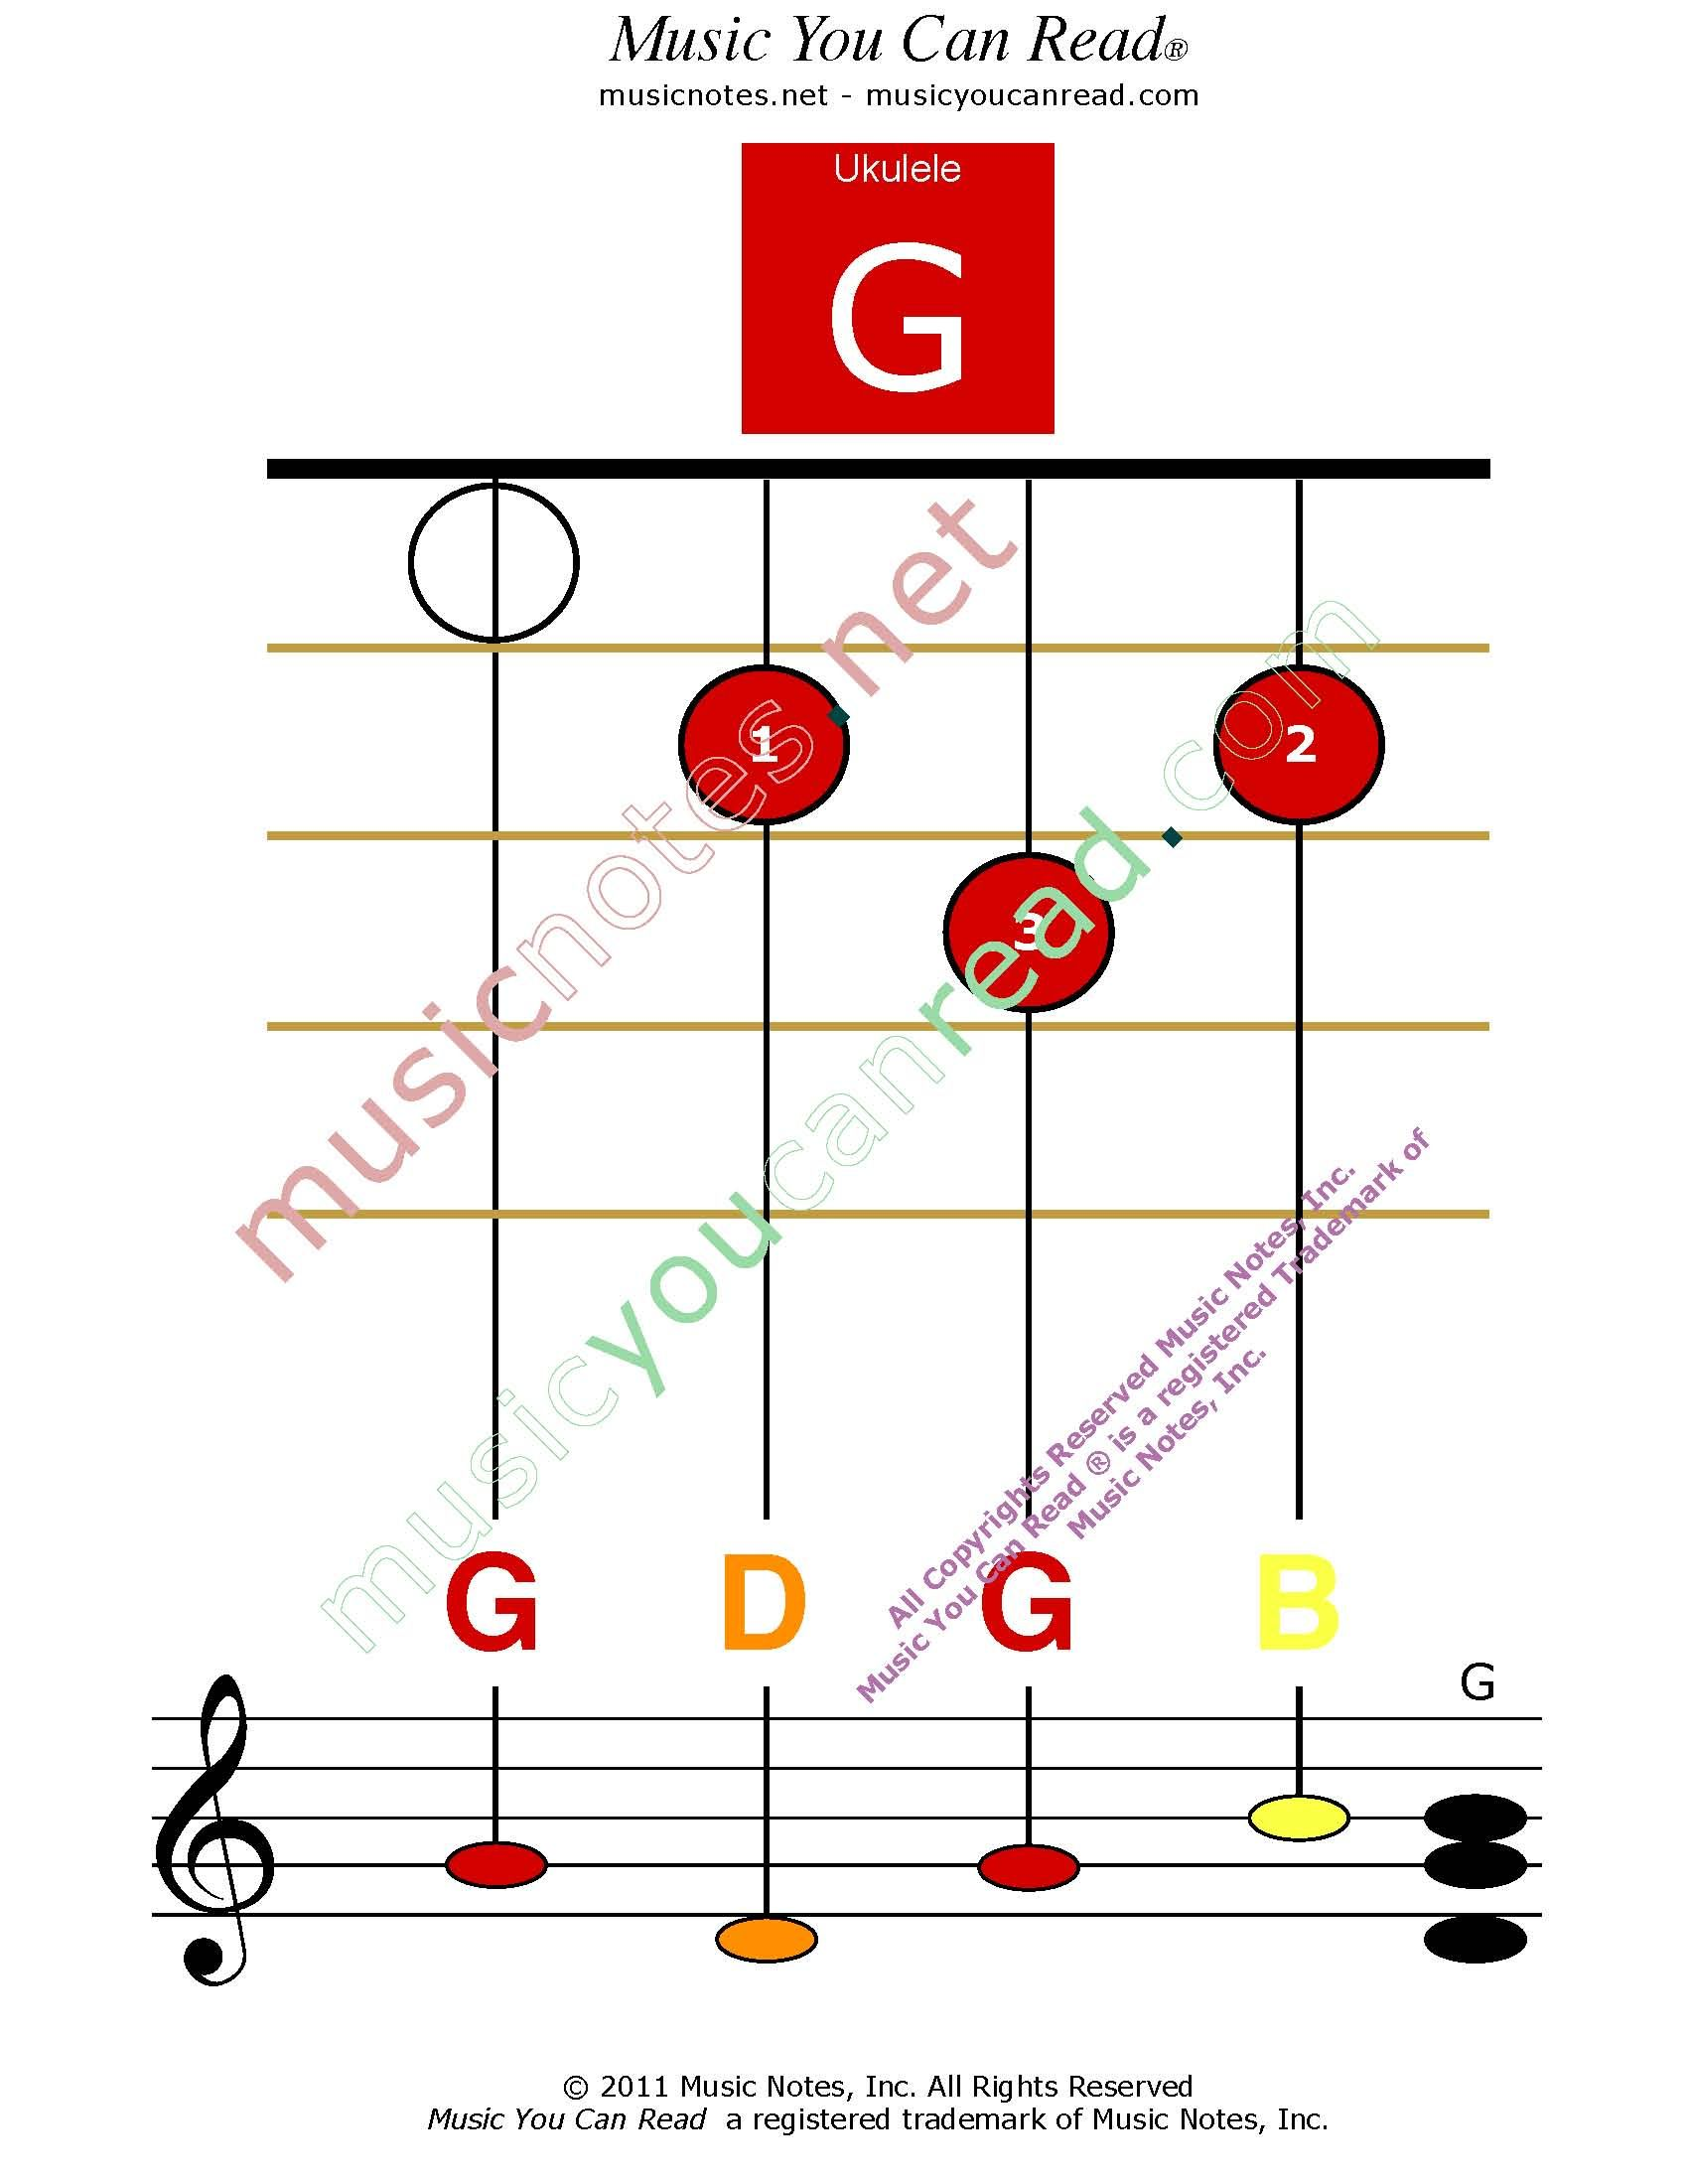 Music you can read ukulele chord chart g classroom ukuleles music you can read ukulele chord chart g hexwebz Images